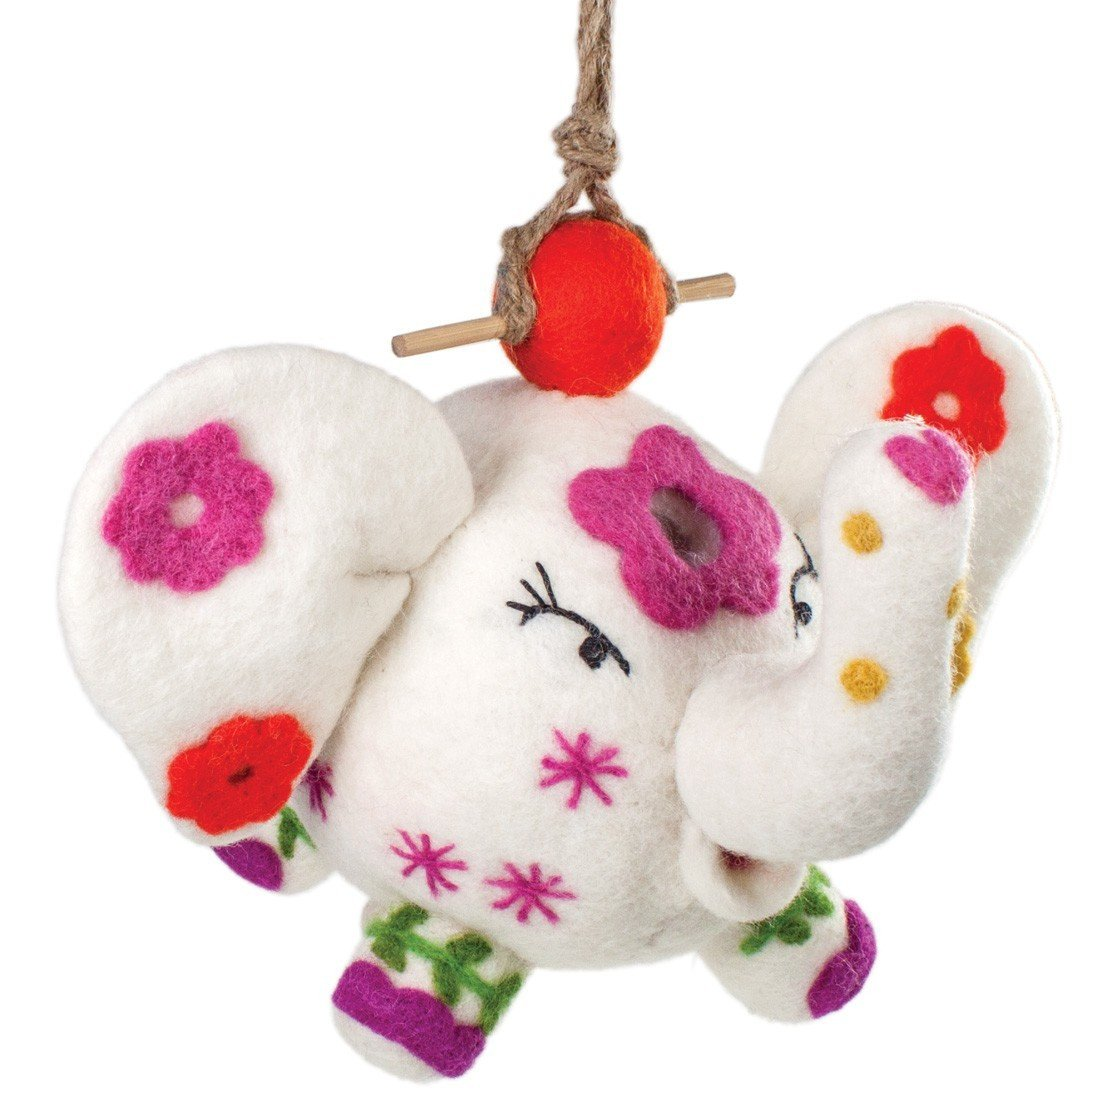 Wild Woolies Felt Birdhouse - Flower Power Patty